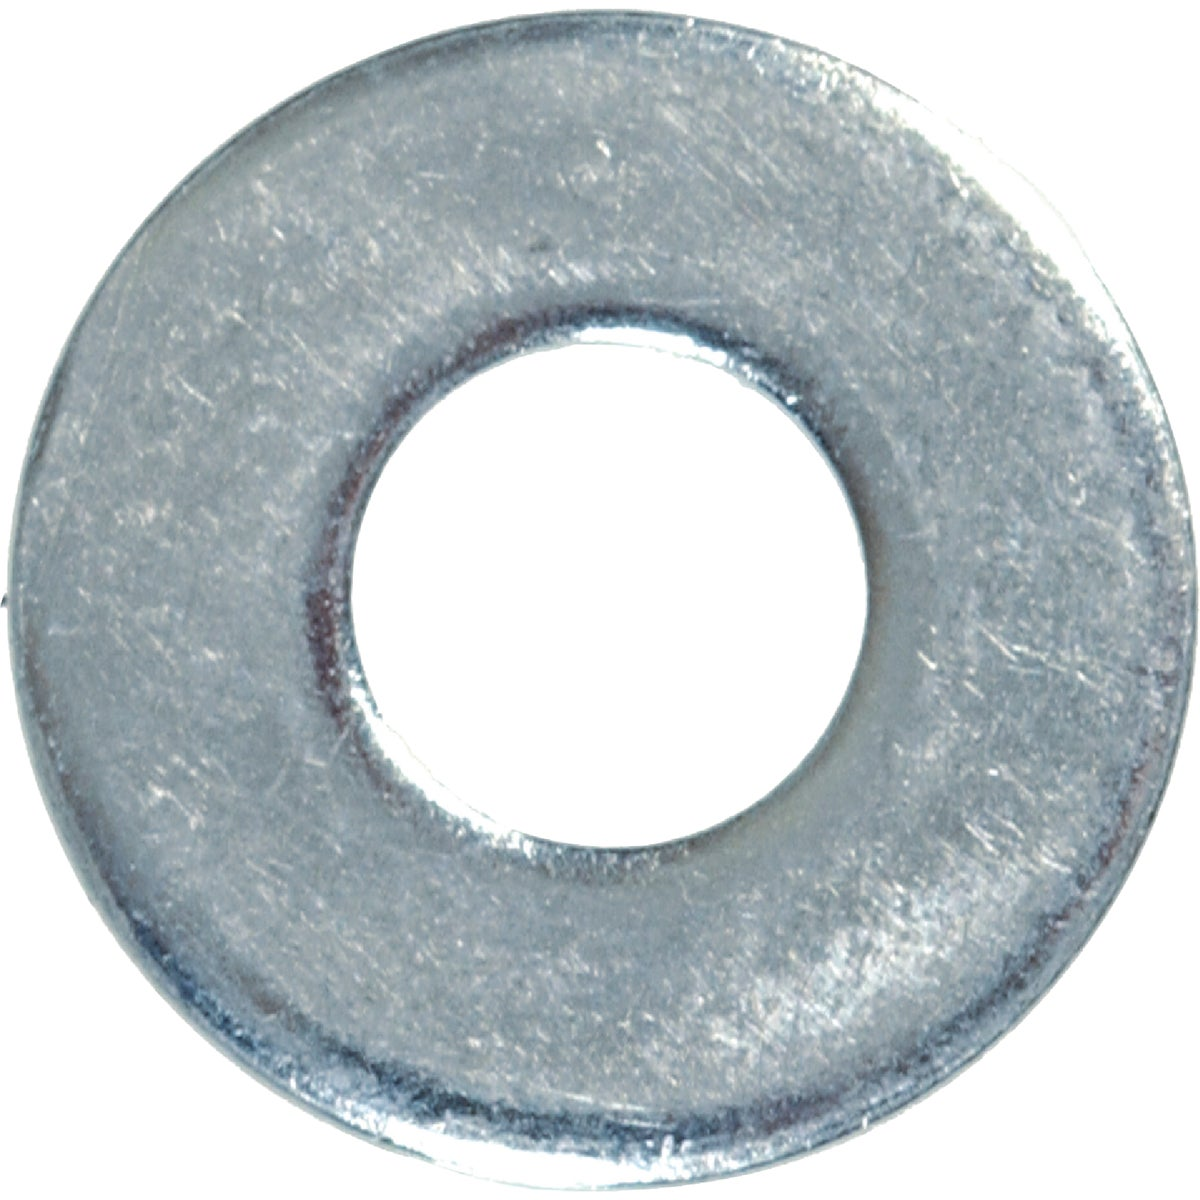 #8 STEEL FLAT WASHER - 6447 by Hillman Fastener